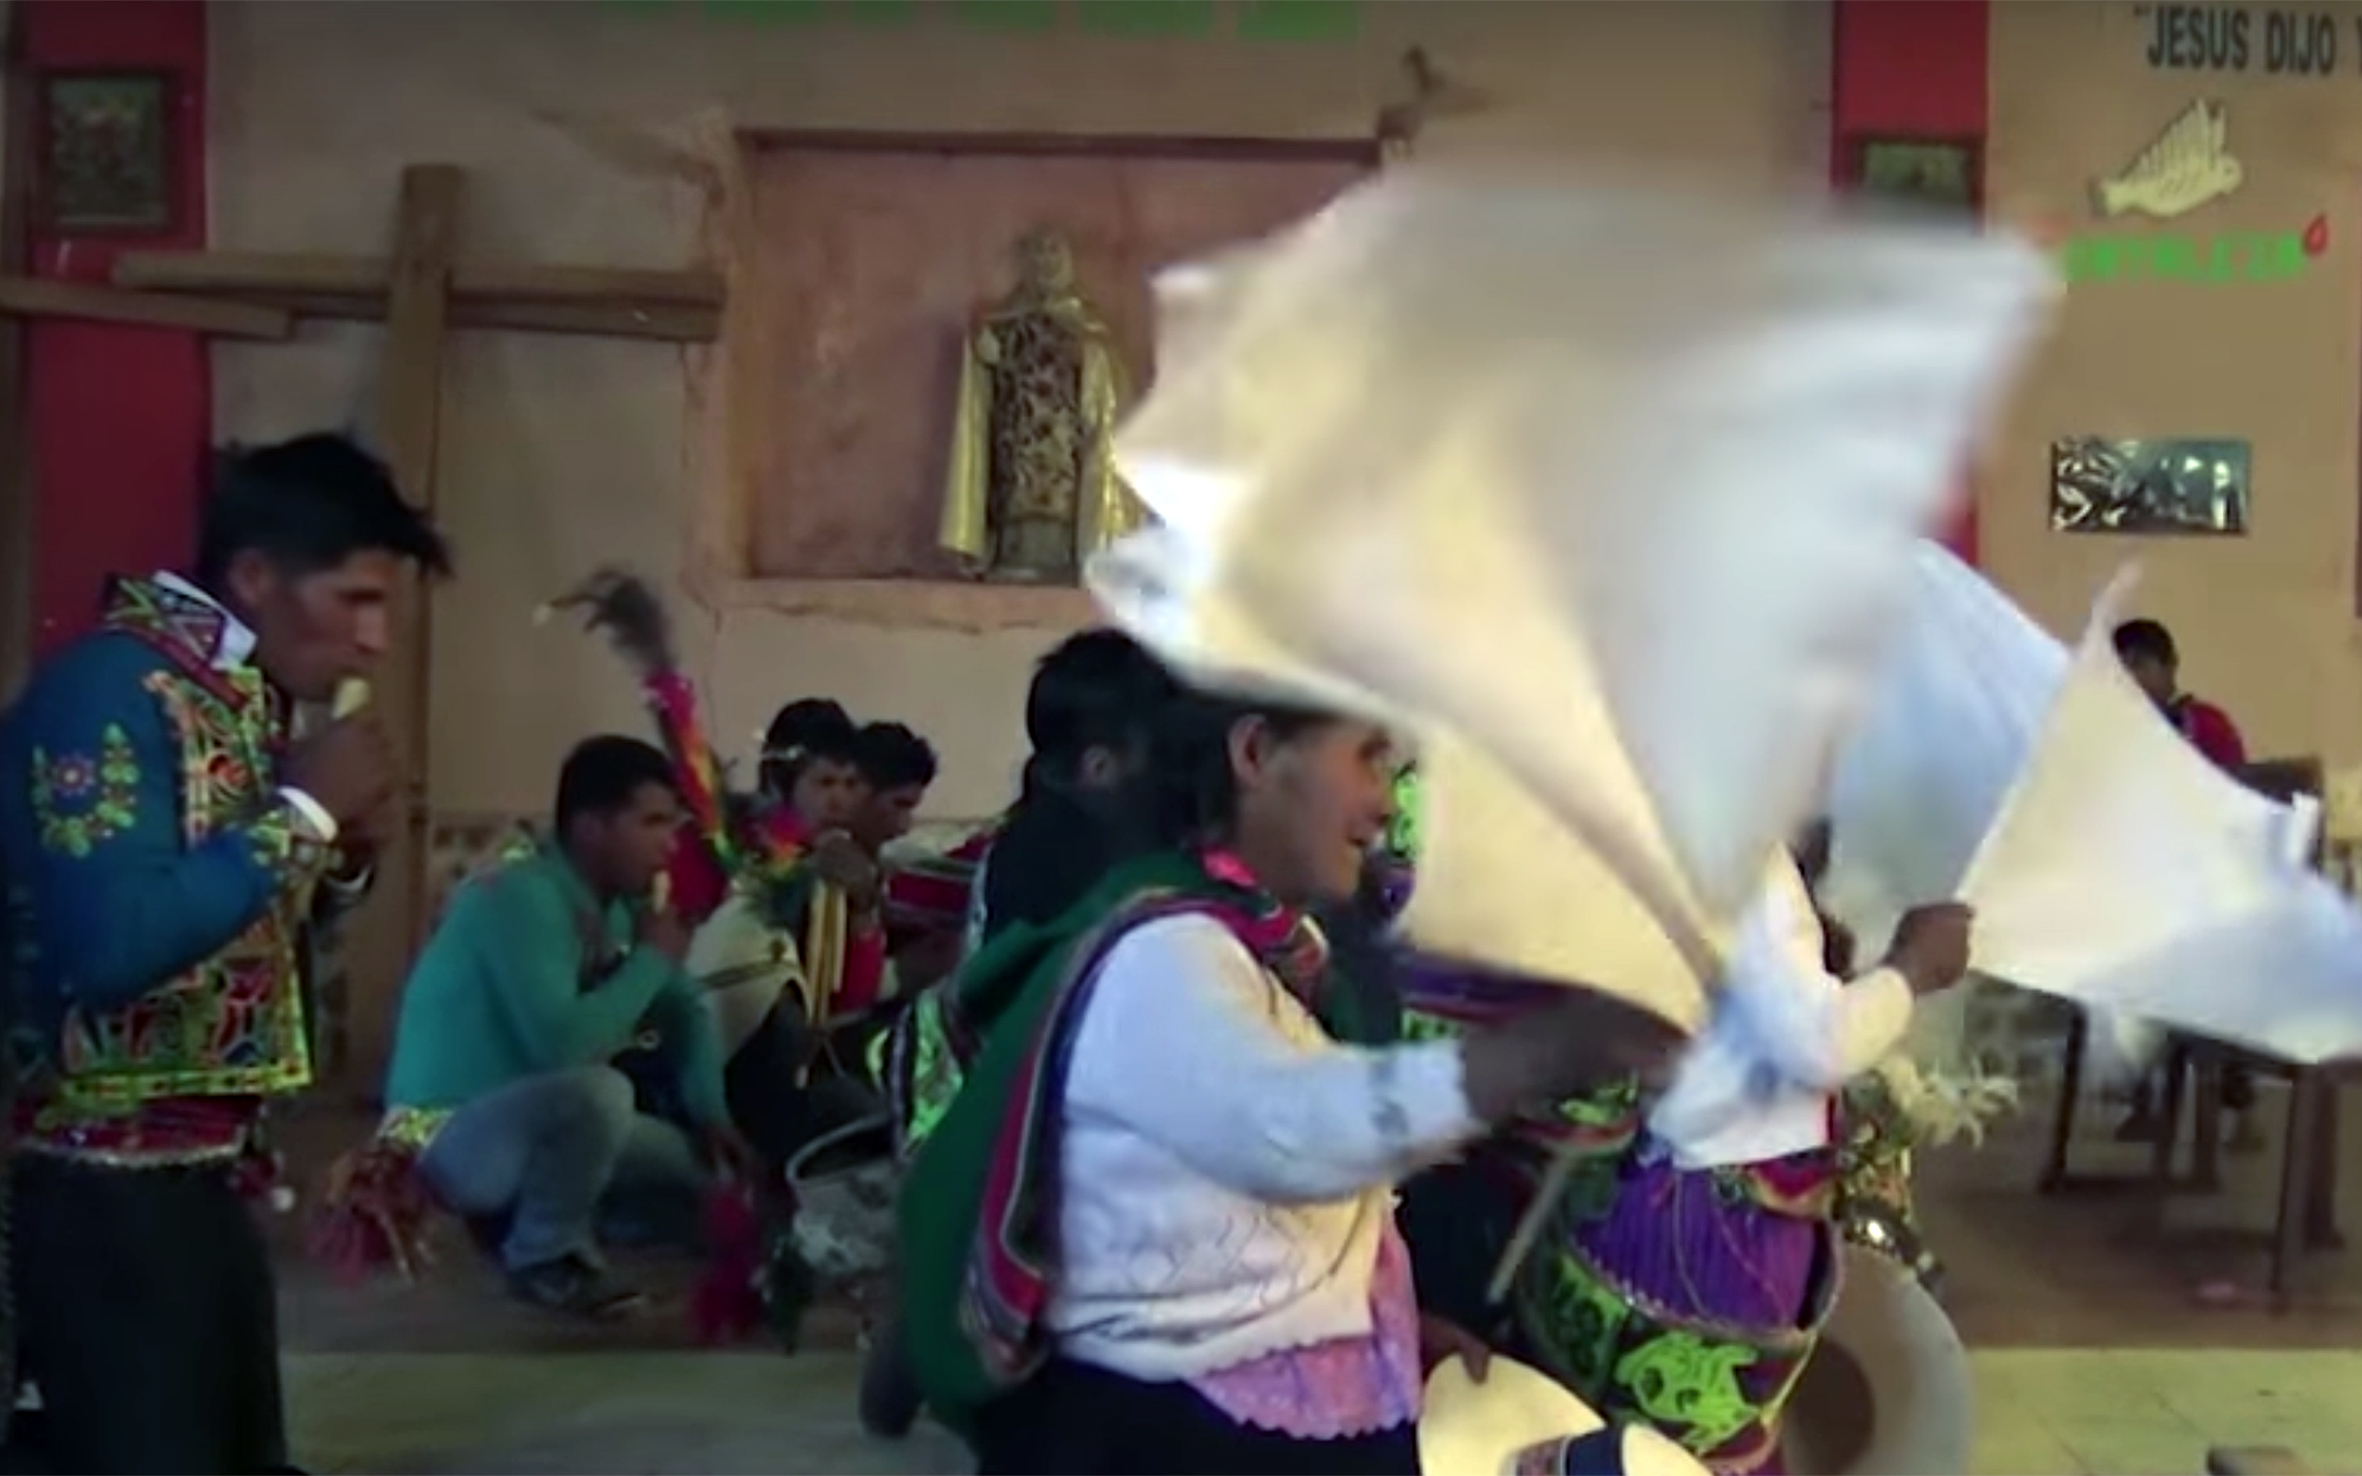 883.Tinku / Bolivia - Tinku is a ritual and a folkloric dance that is danced originally in the north of Potosí, in Bolivia. Word Tinku means